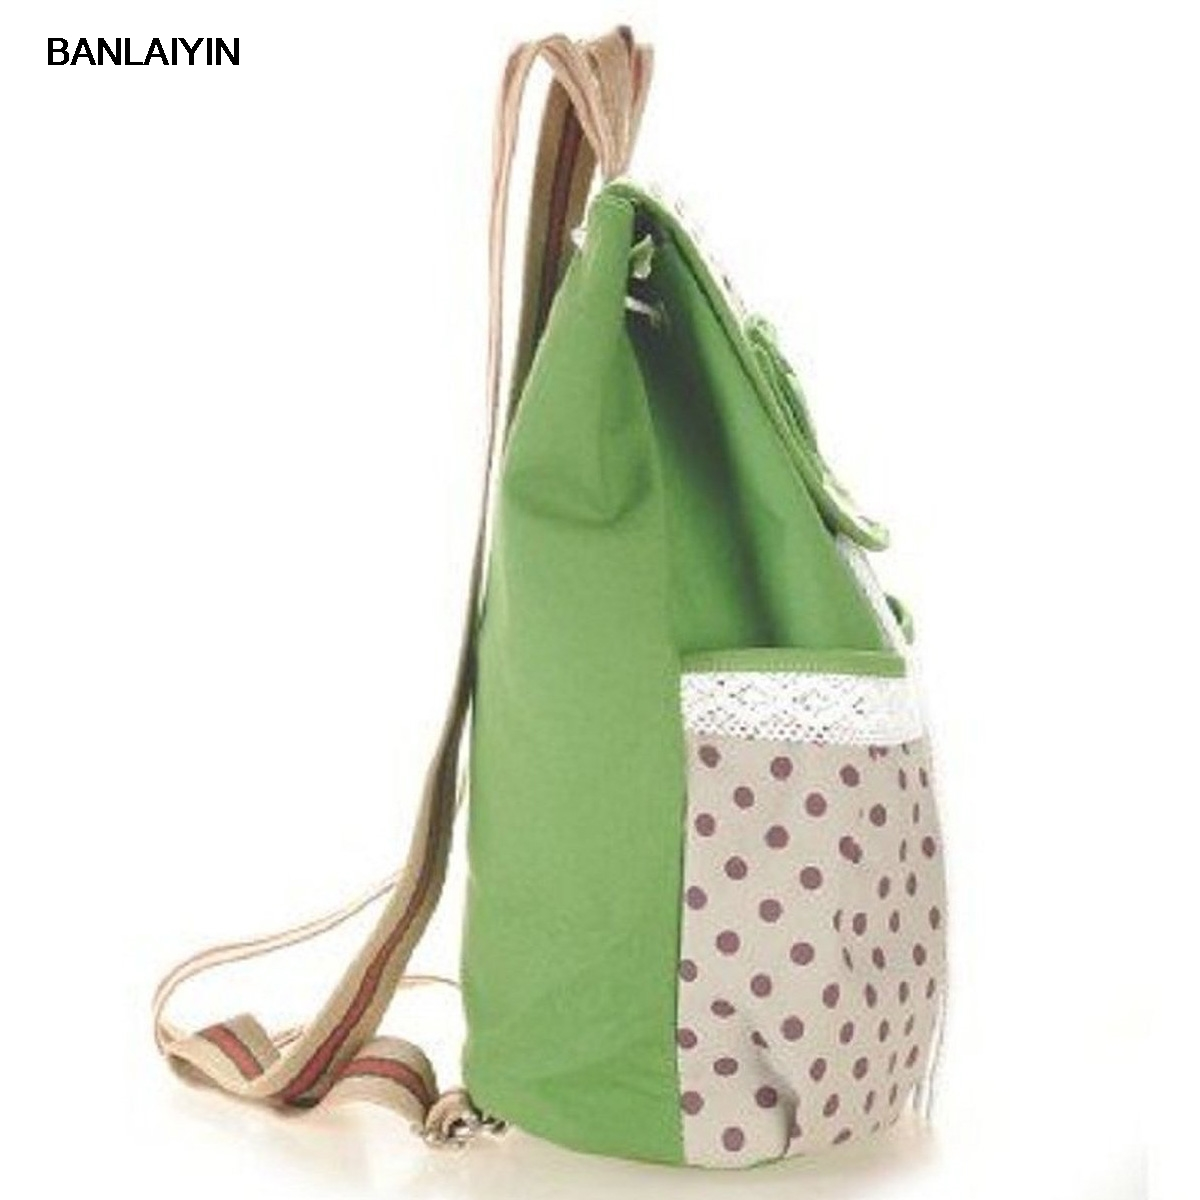 WholeTide 10* Girls Bowknot Canvas Backpack For Student (Green)WholeTide 10* Girls Bowknot Canvas Backpack For Student (Green)